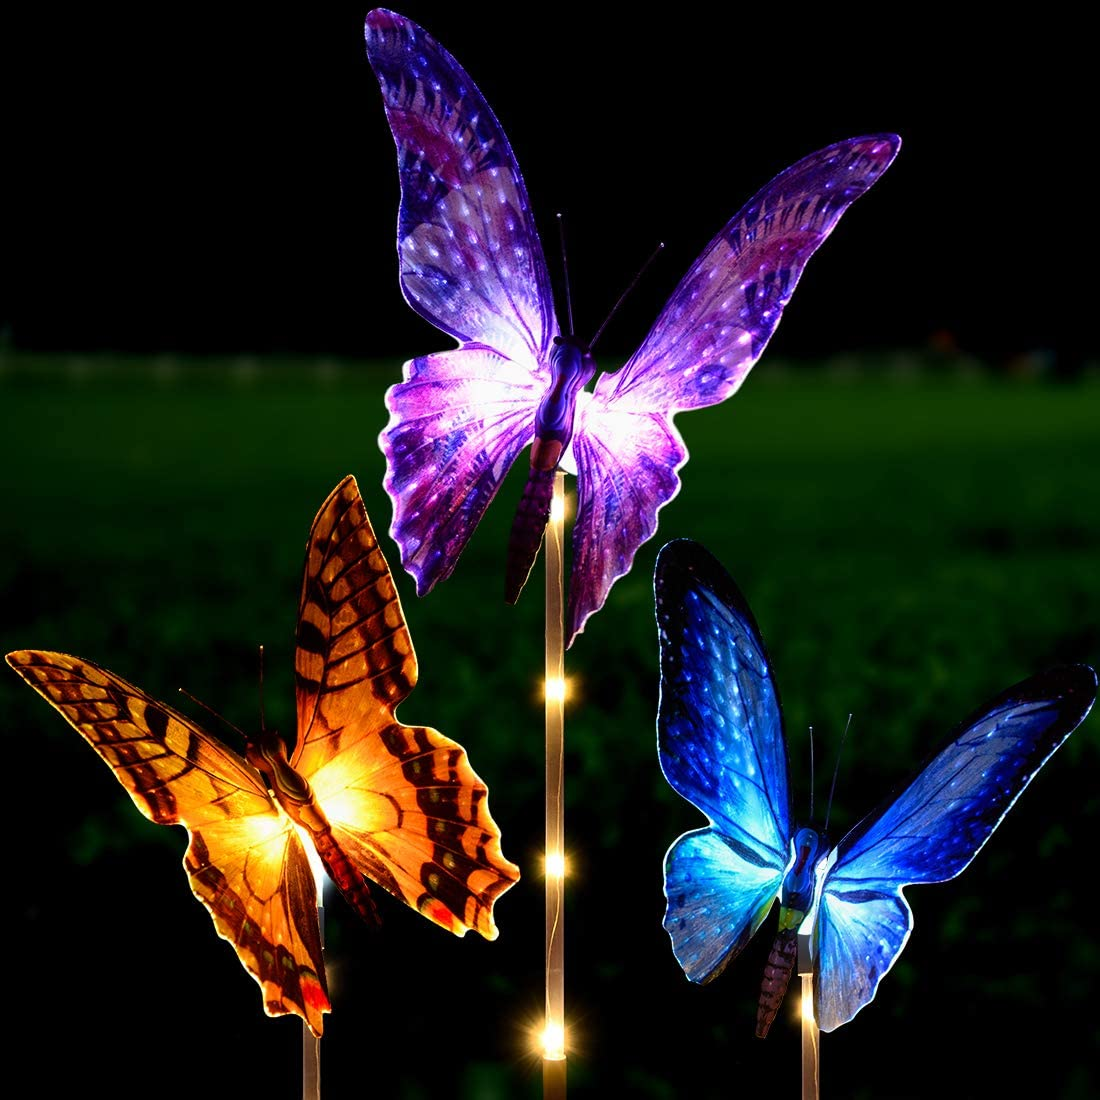 Solar Garden Lights Outdoor – Kearui 3 Pack Solar Stake Light with Fiber Optic Butterfly Decorative Lights, Multi-Color Changing LED Solar Lights for Garden Decorations, Garden Gifts